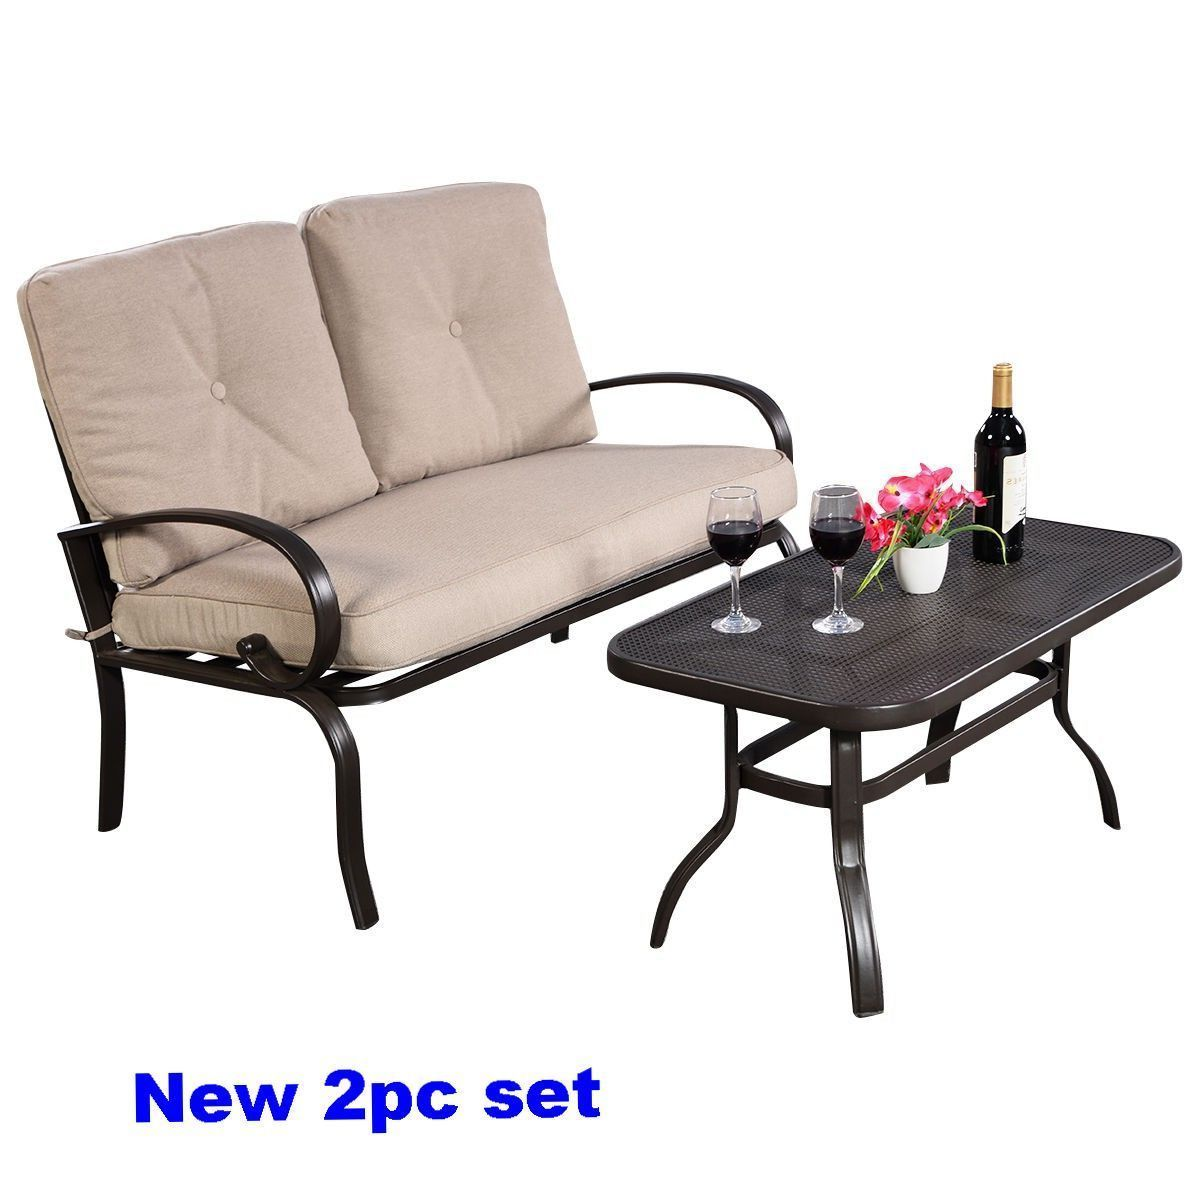 S L1600 Outdoor Patio Sofa Bistro Steel Seat Coffee Table Loveseat Cushion Clearance 2pc